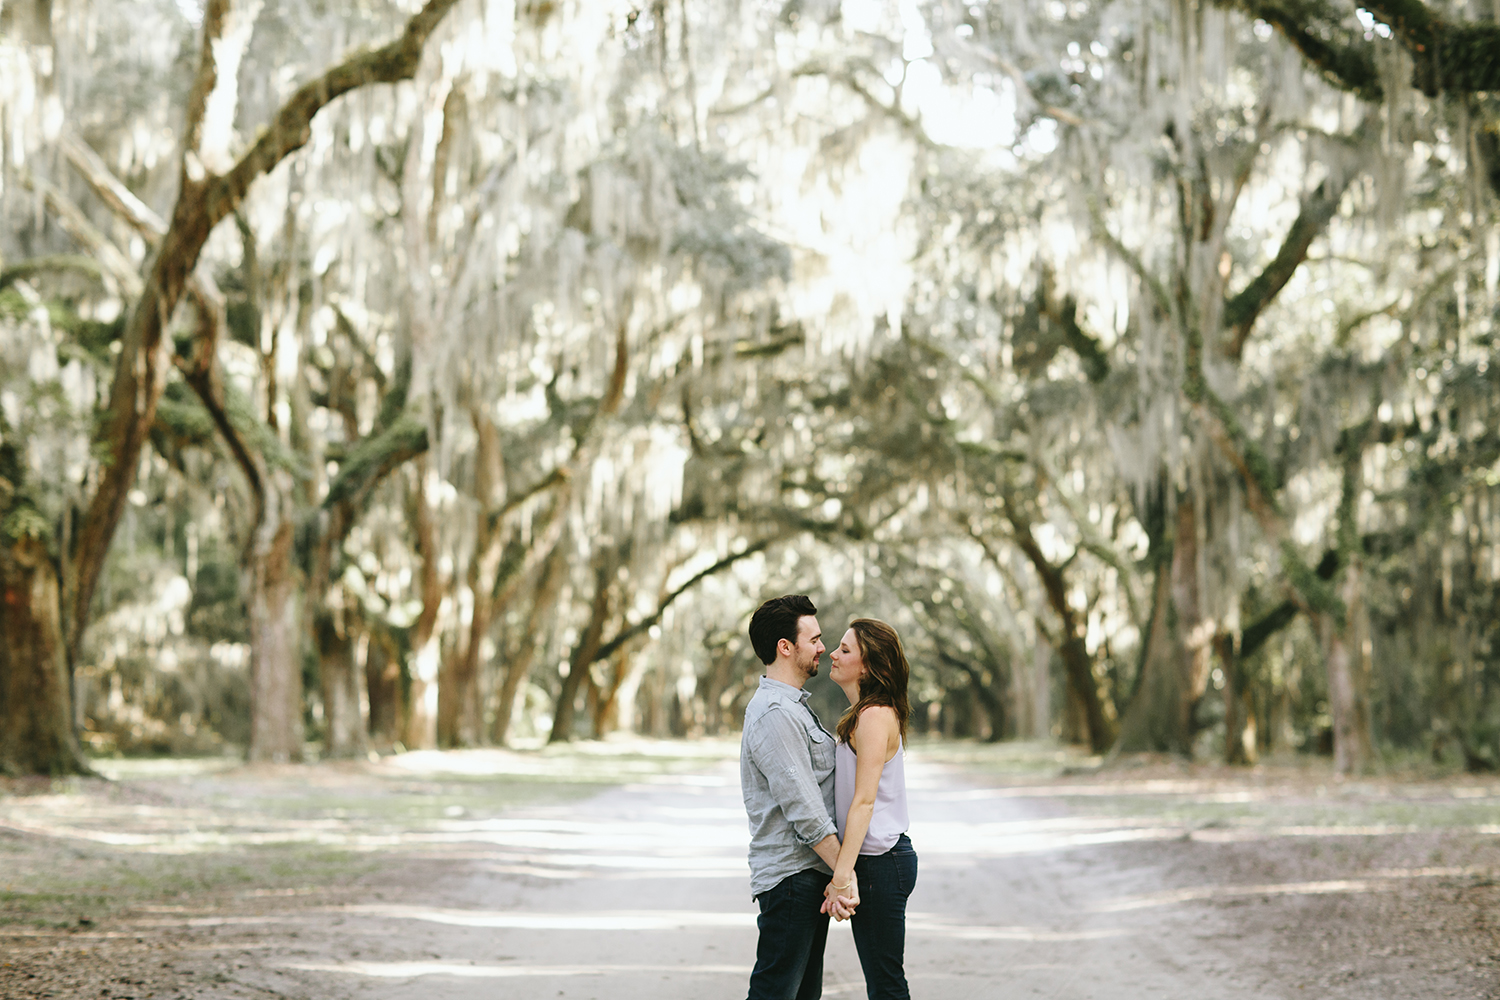 karliwillengaged - alicia white photography-52.jpg